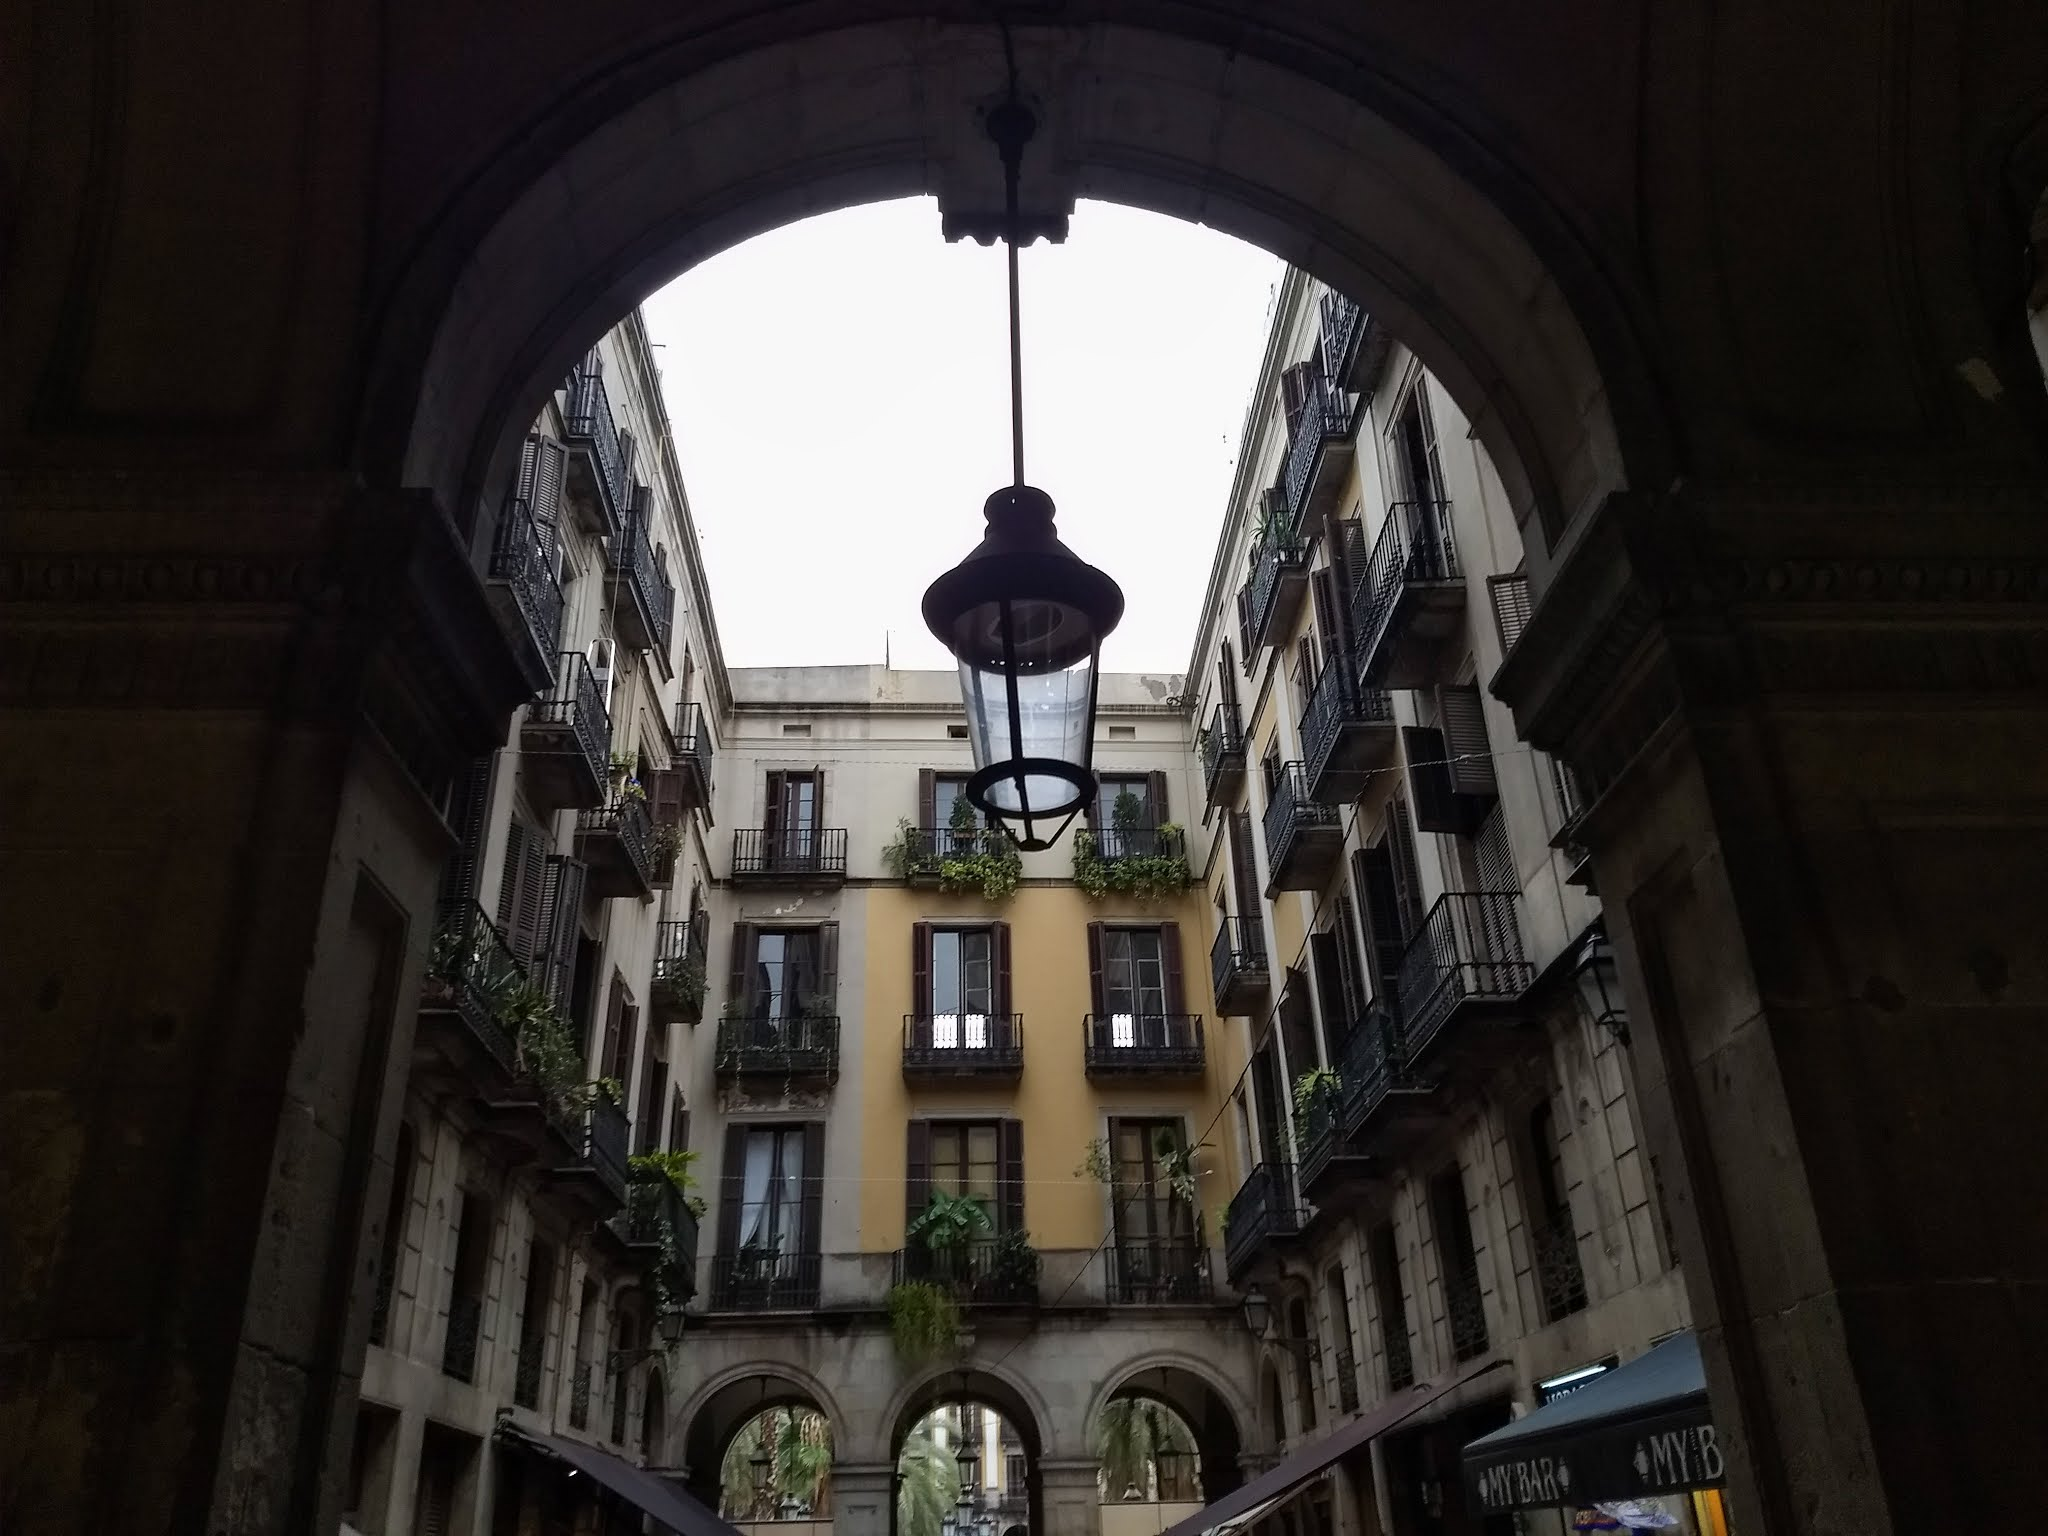 Under an archway in the Passatge de Madoz in Barcelona, Spain.